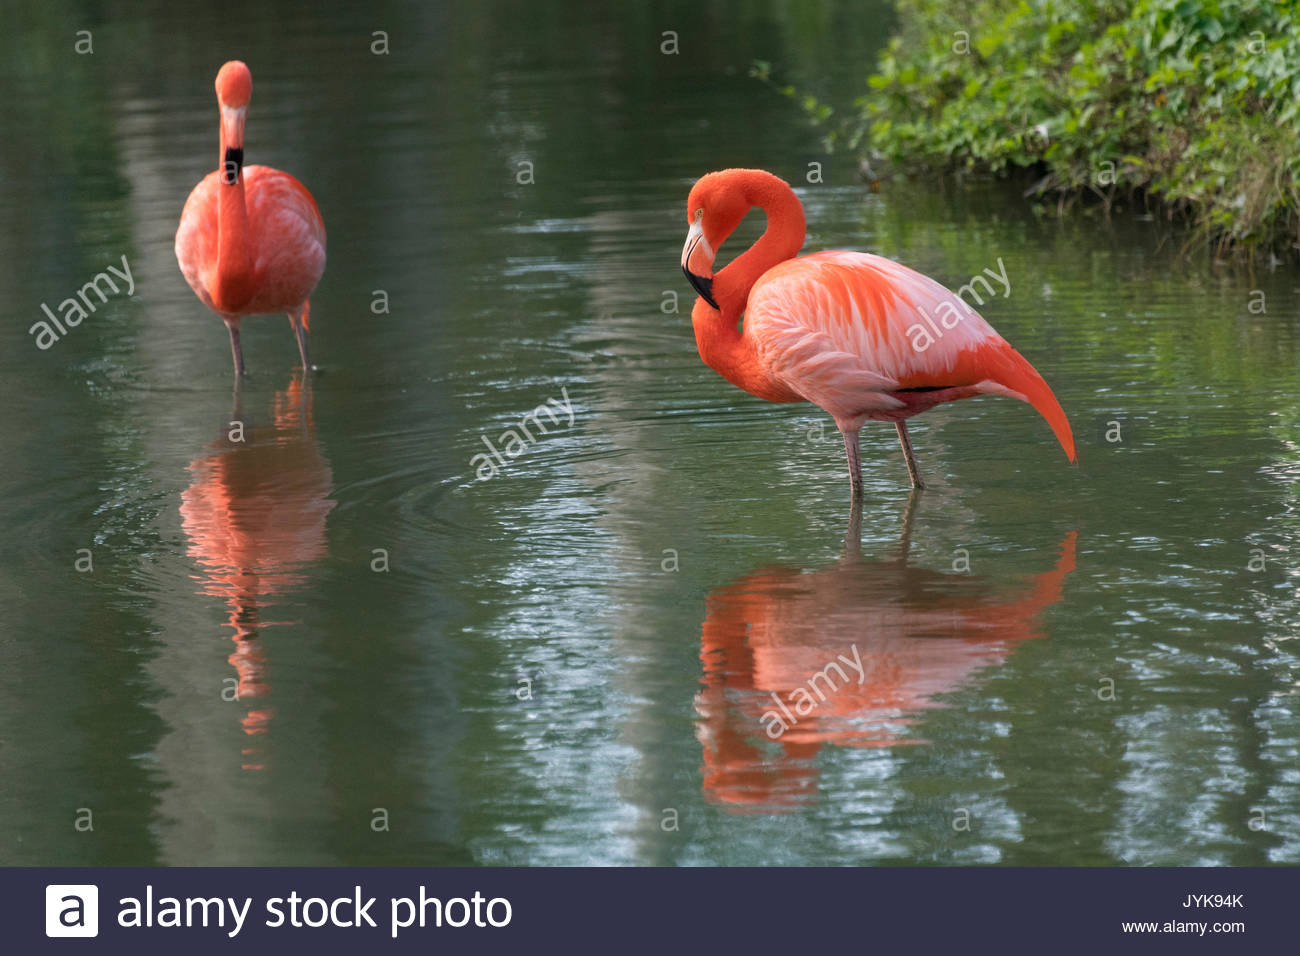 Pink flamingo bird in the 'Mayajigua Lakes' or 'San Jose del Lago'. The place is a natural reserve for eco-tourism operated by Masnatura. - Stock Image